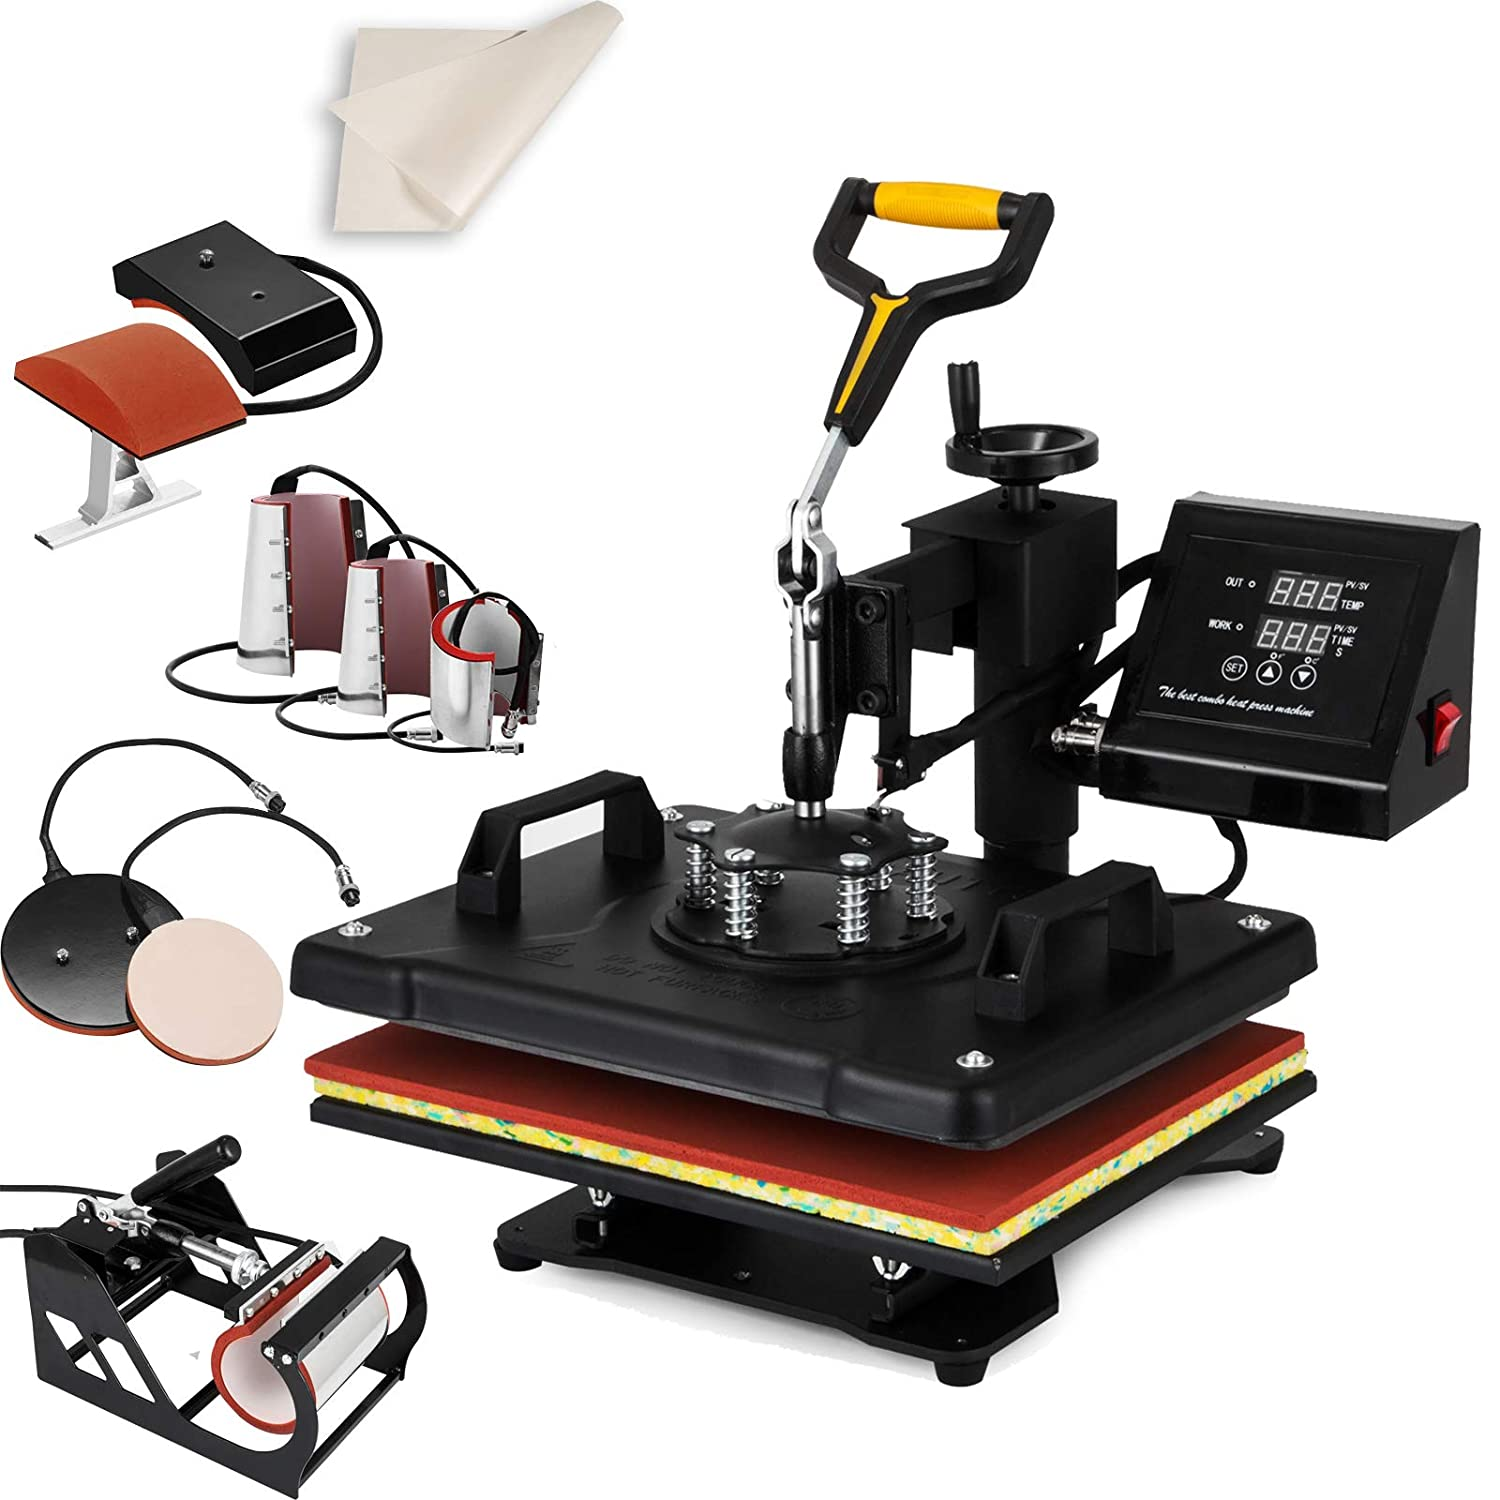 "SHZOND Heat Press 12""x 15"" 5 in 1 Combo Heat Transfer Machine Multifunctional Digital Transfer Sublimation Heat Press Machine for T Shirts/Hat/Mug/Plate/Cap (12x15 inch 5 in 1)"